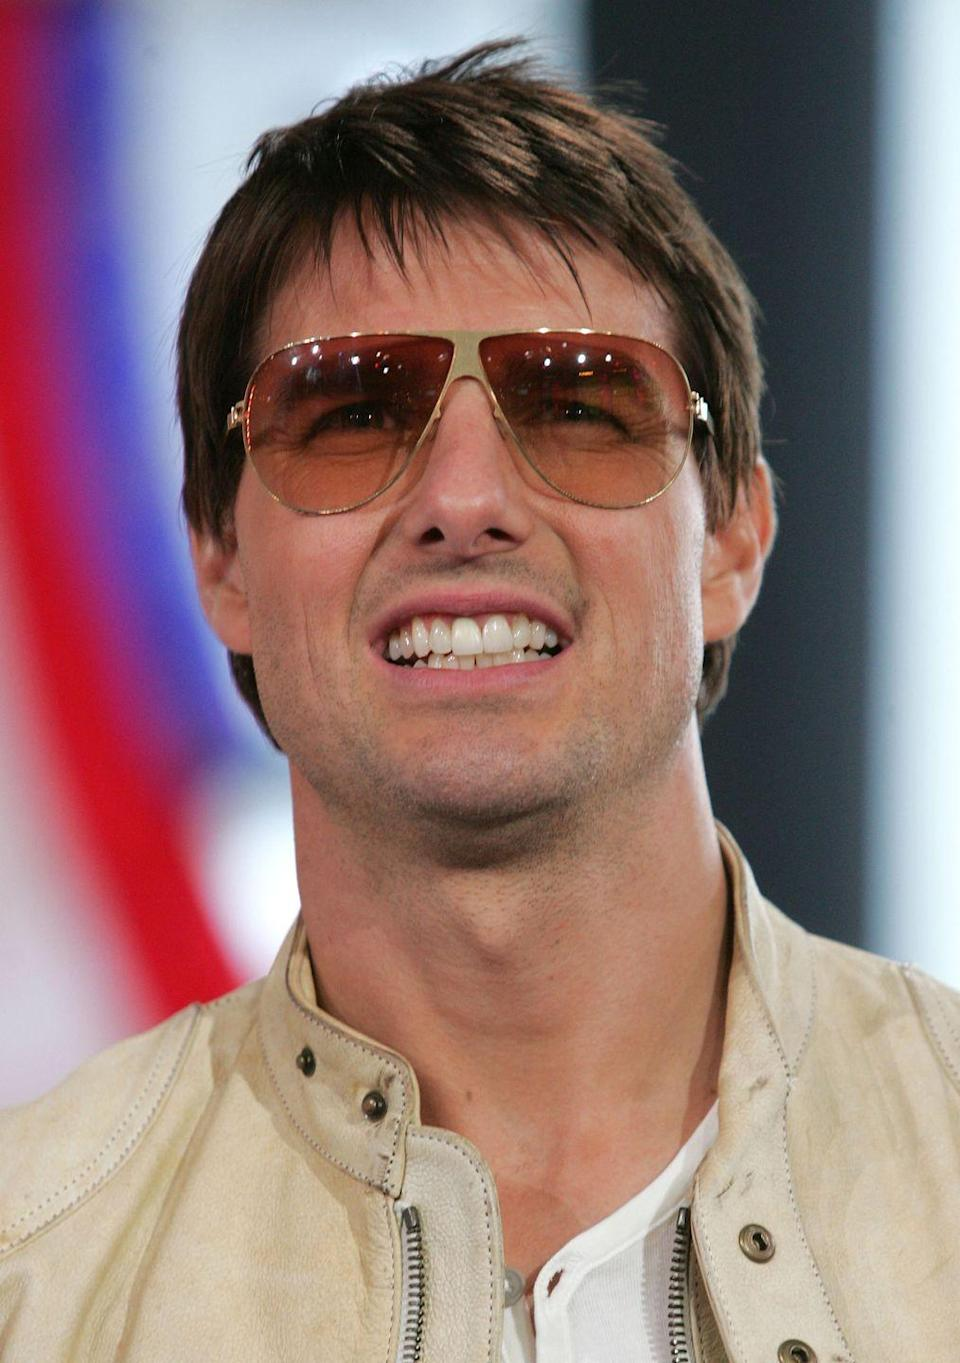 <p>Tom Cruise making this face at <em>TRL</em> = how I feel about finding pictures of Tom Cruise making this face on <em>TRL</em>.</p>